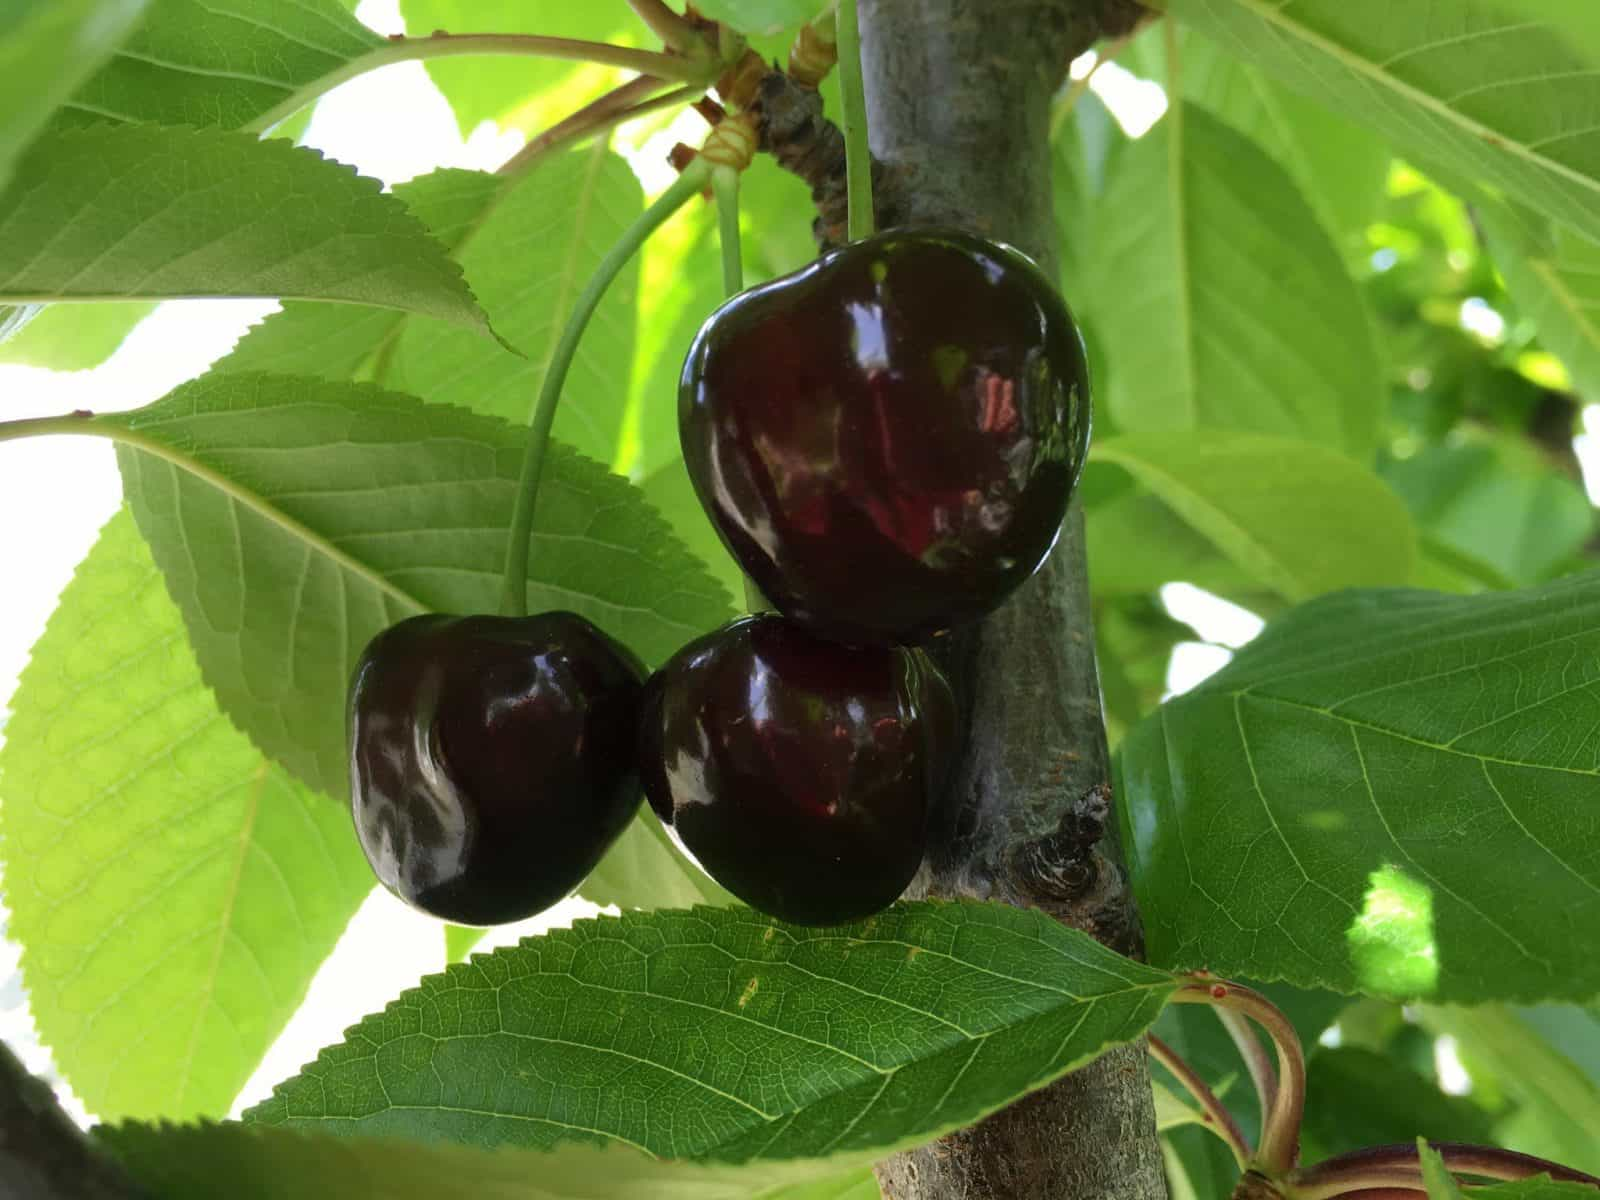 Farm fresh cherries, picked when fully ripe from the trees, packed and ready for you to enjoy